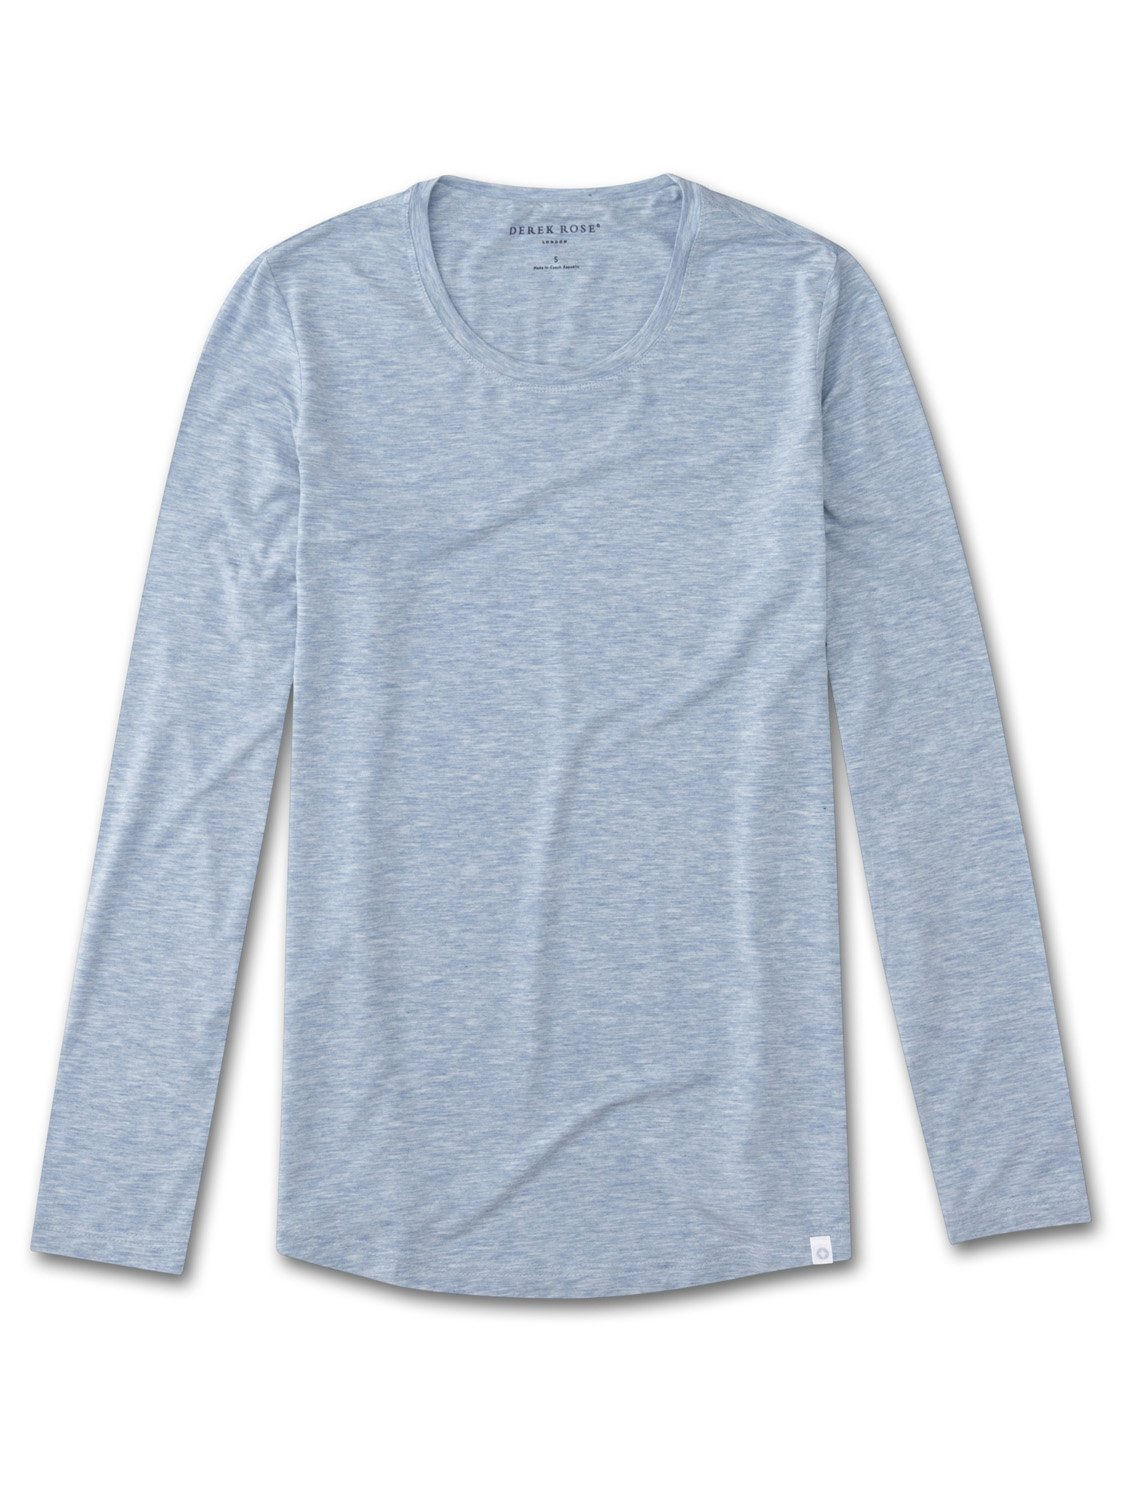 Women's Long Sleeve T-Shirt Ethan Micro Modal Stretch Blue